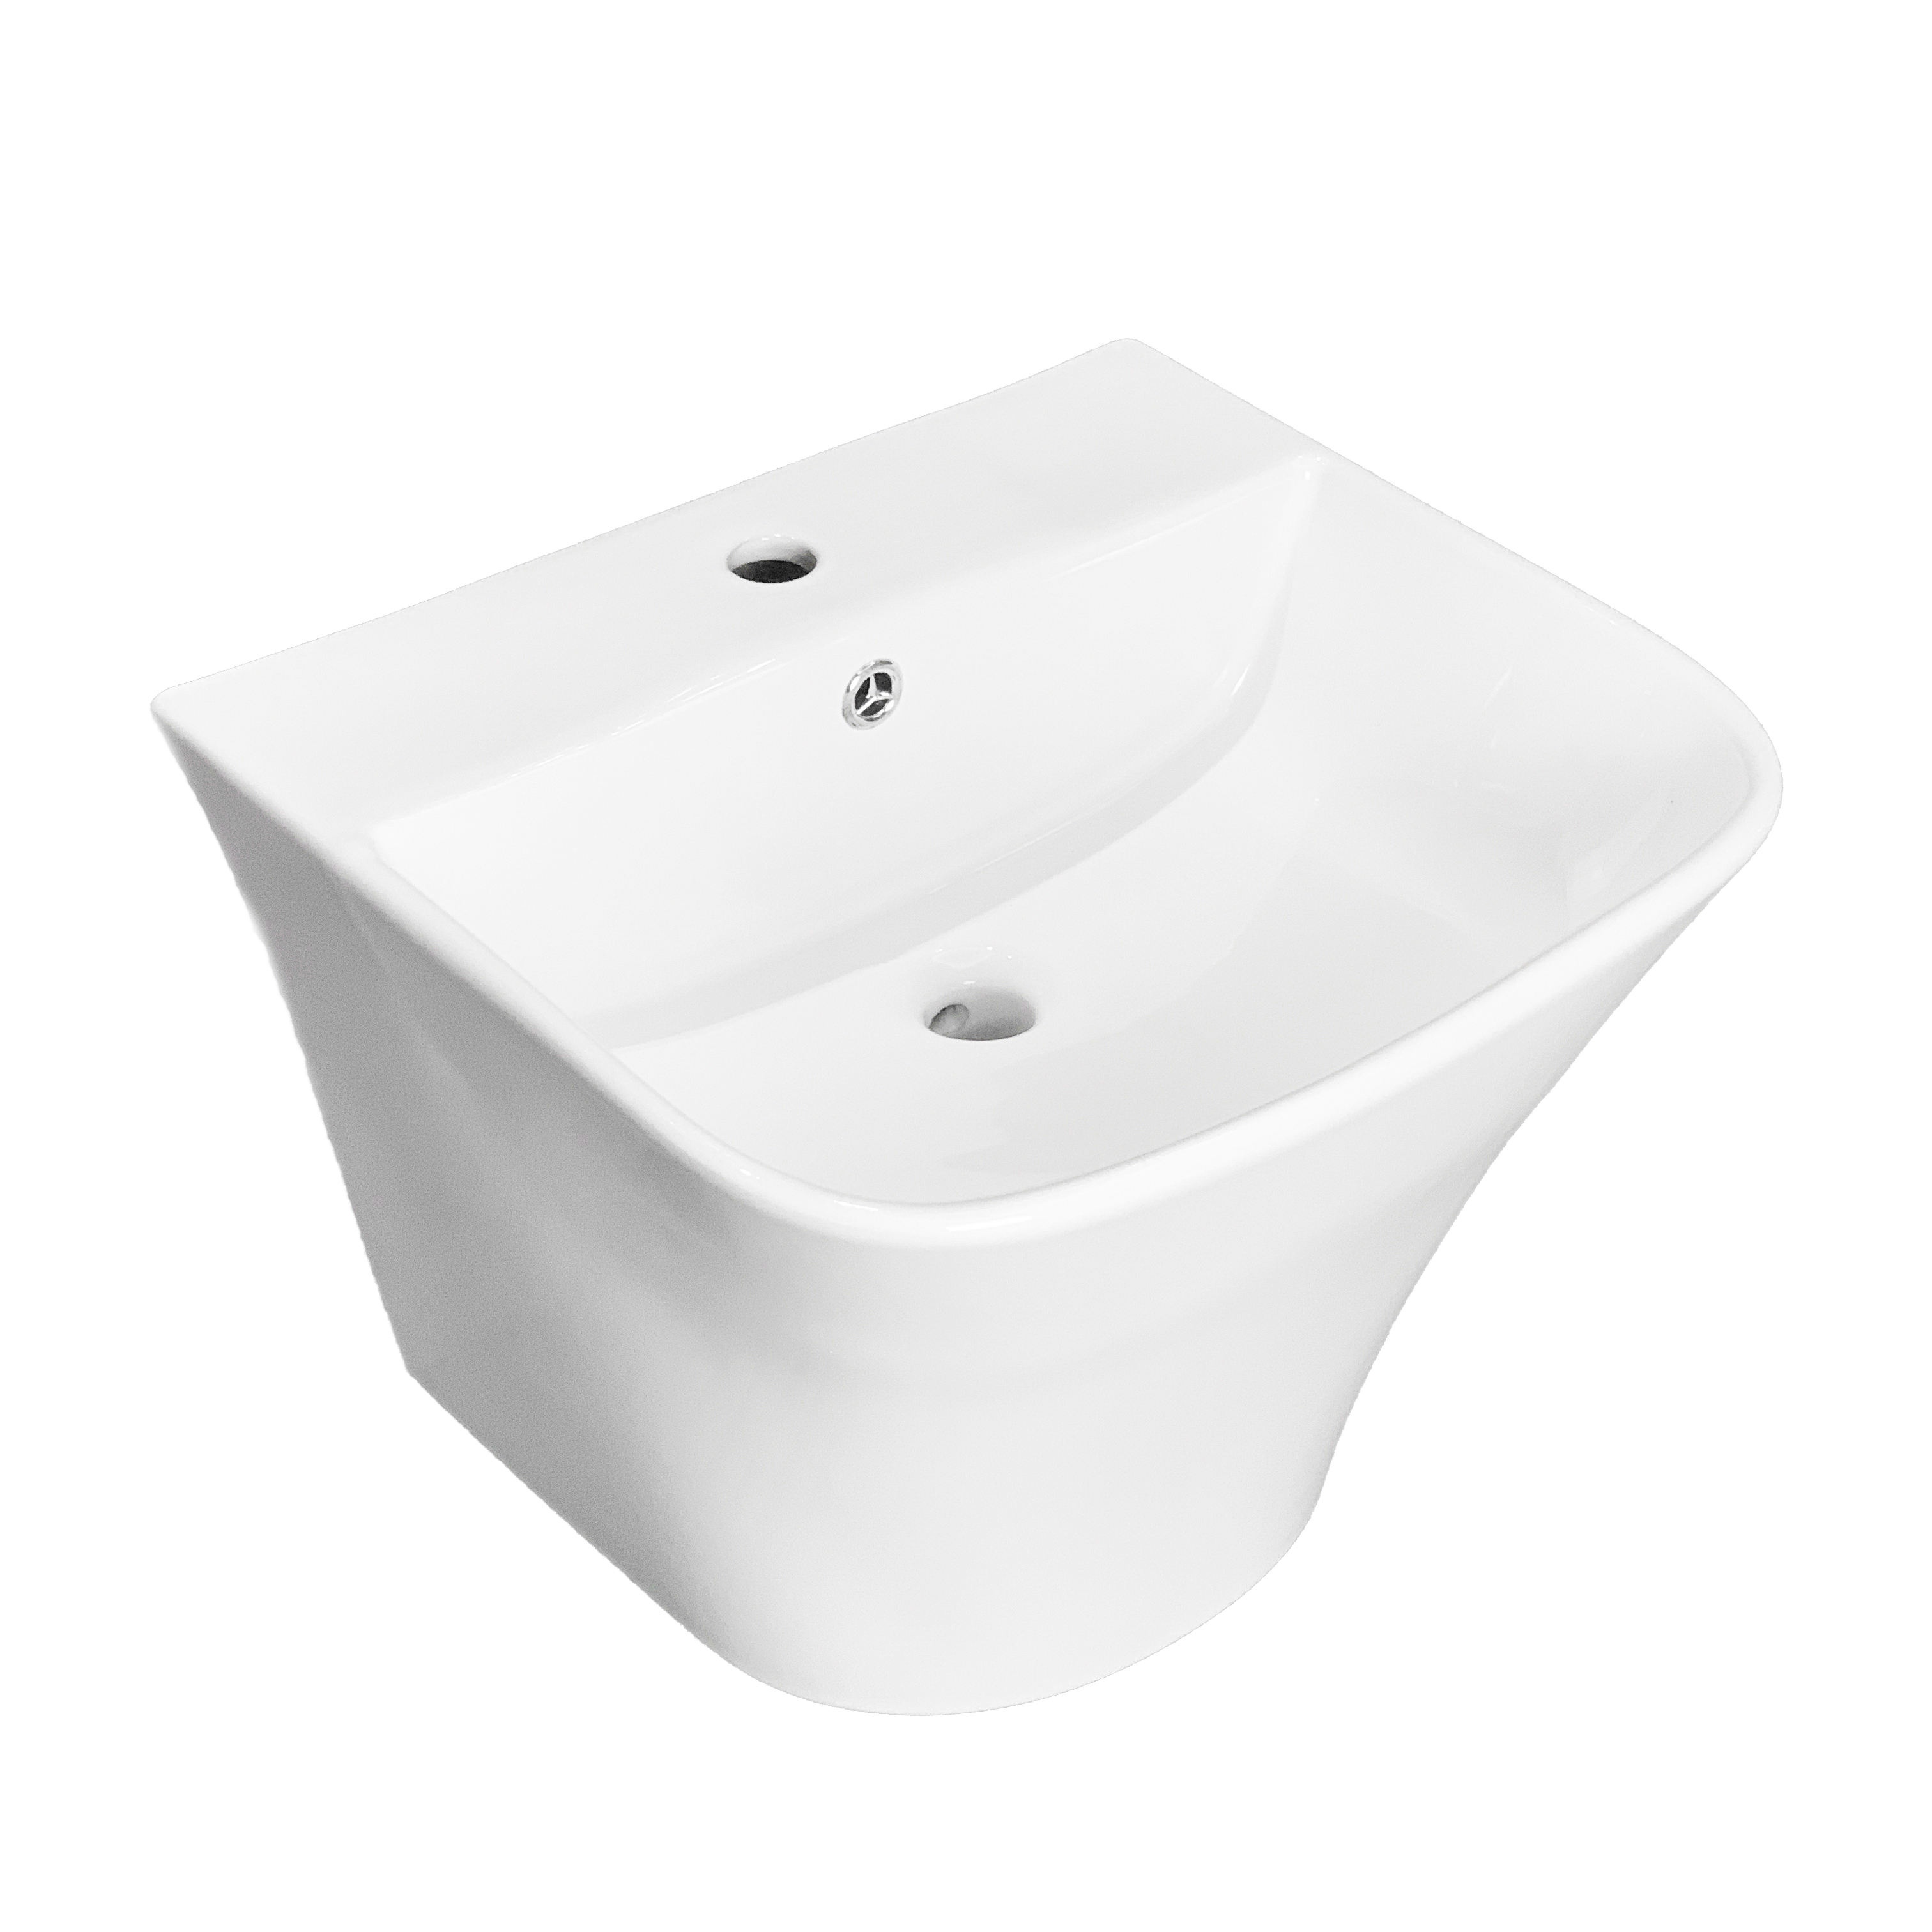 model: H230 New Style Basin Wall Hung Wash Basin Ceramic Mount Sink